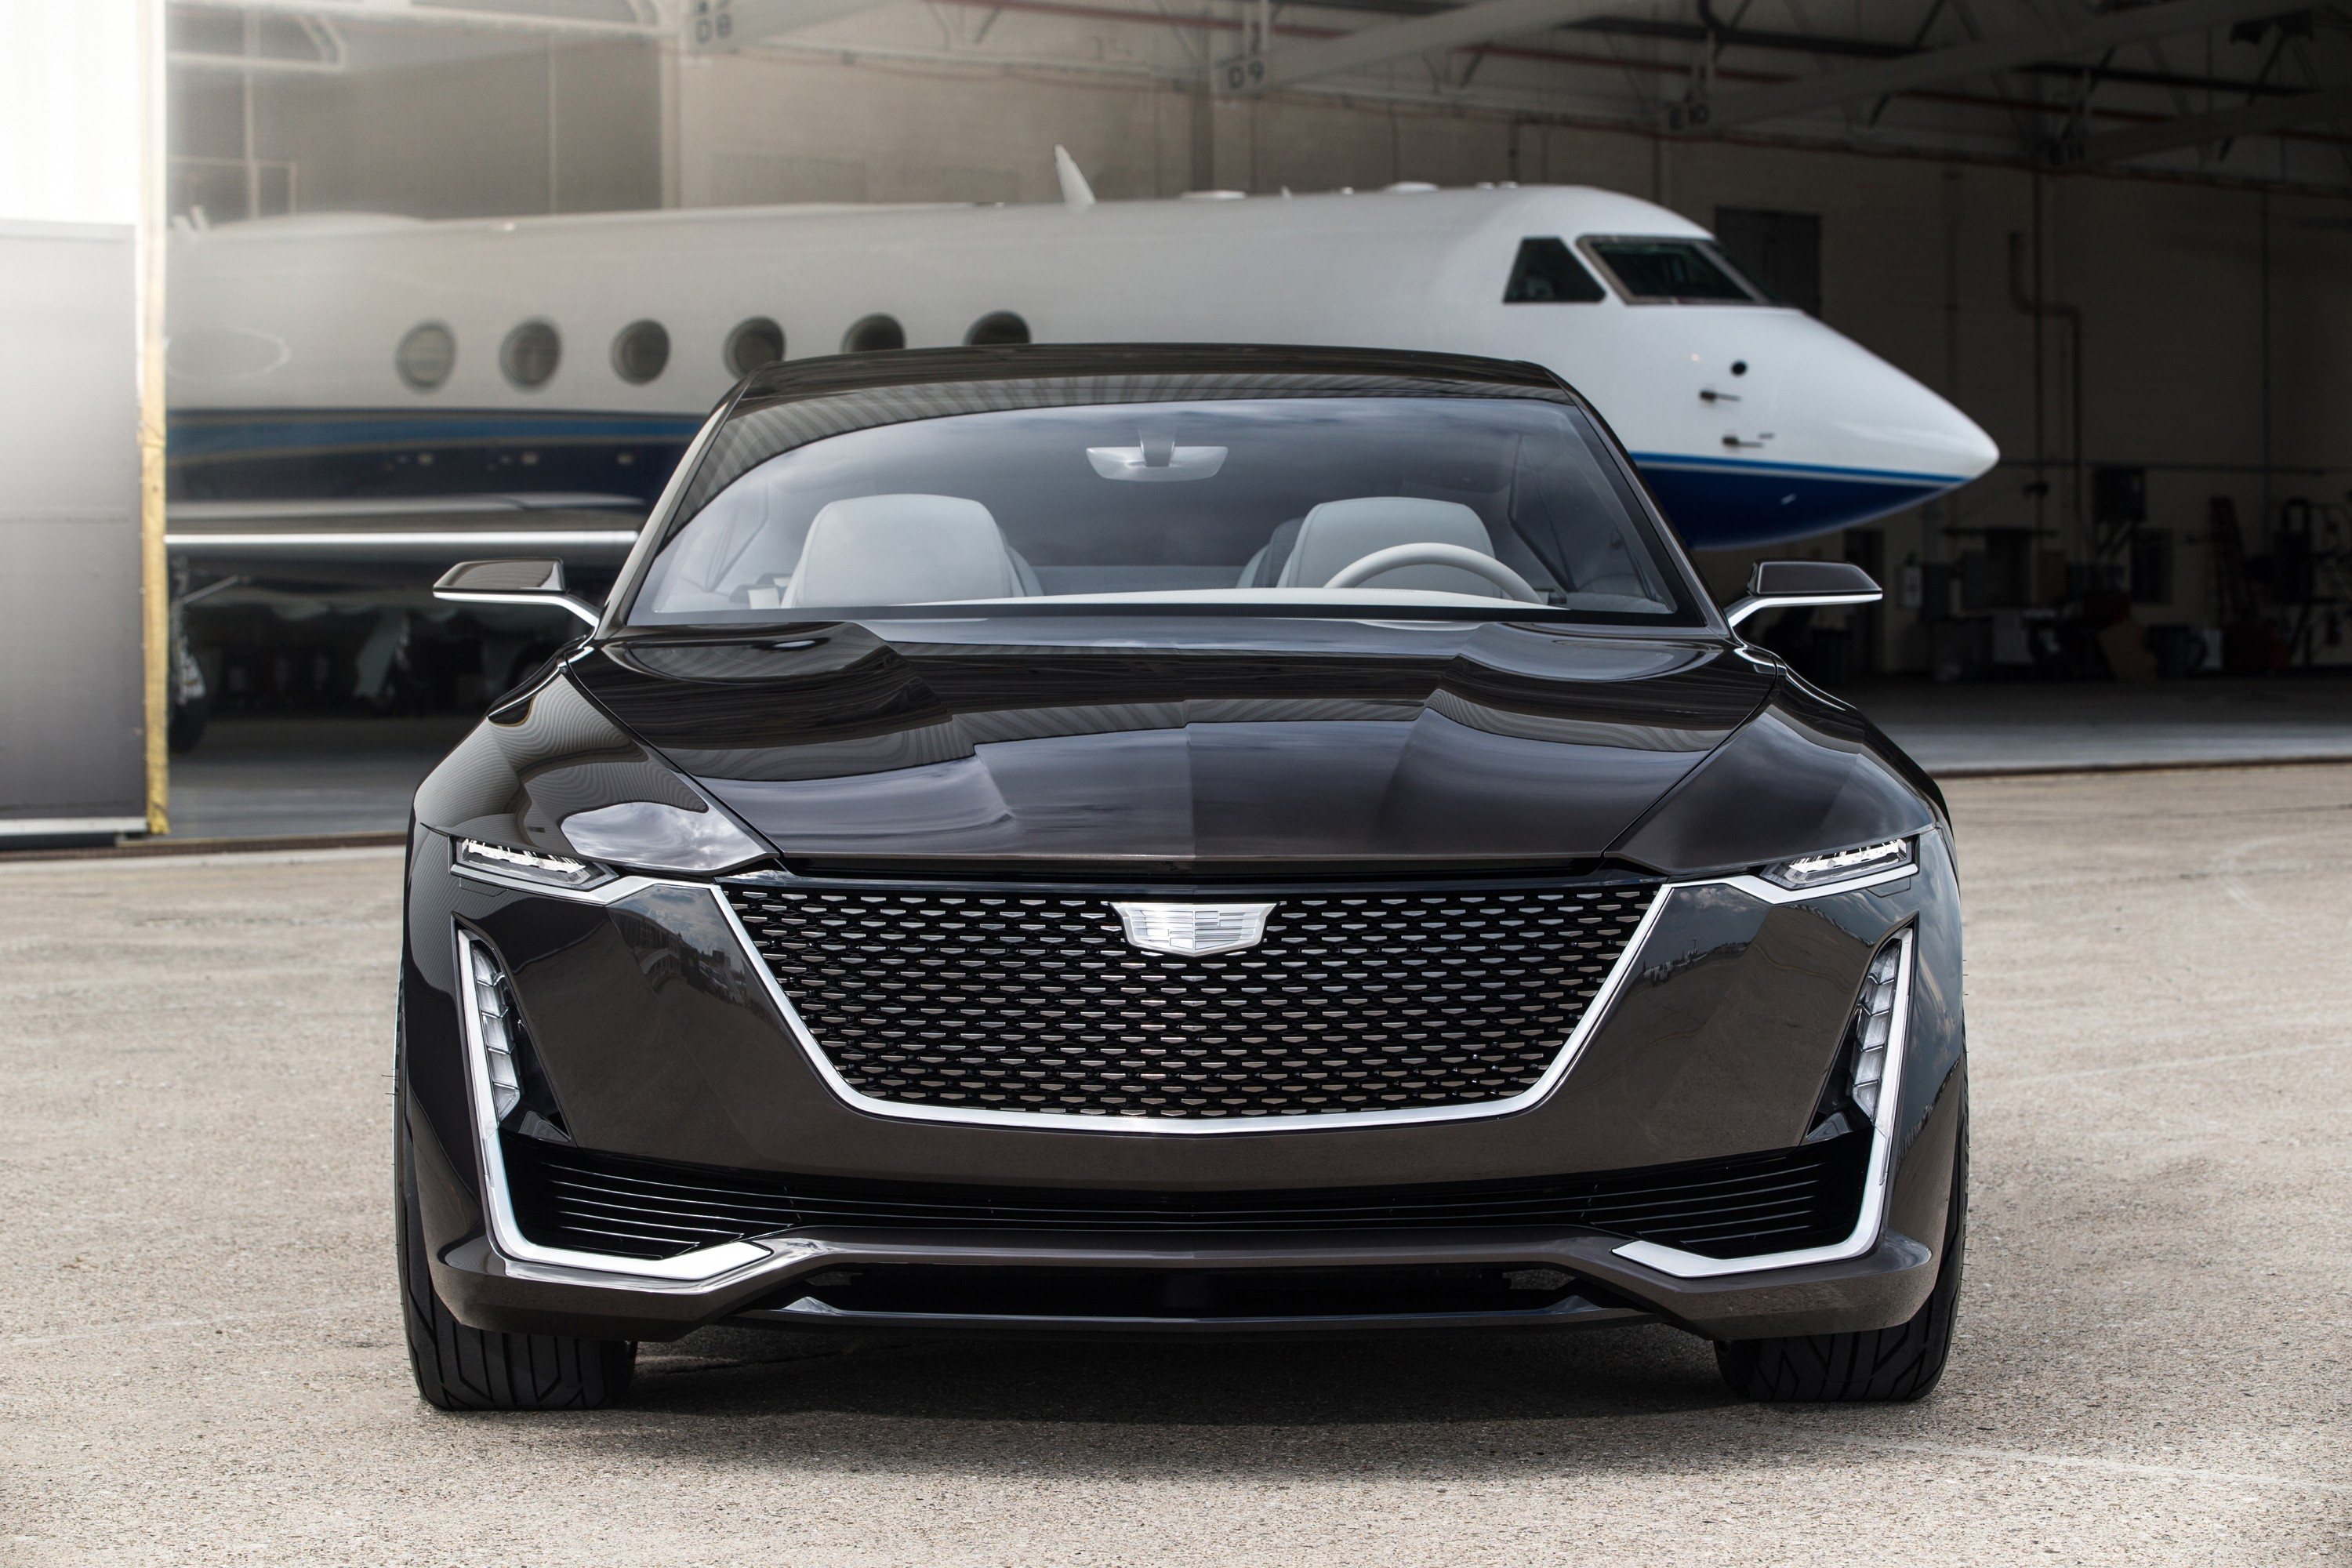 18 All New 2020 Cadillac CTS V Price Design and Review